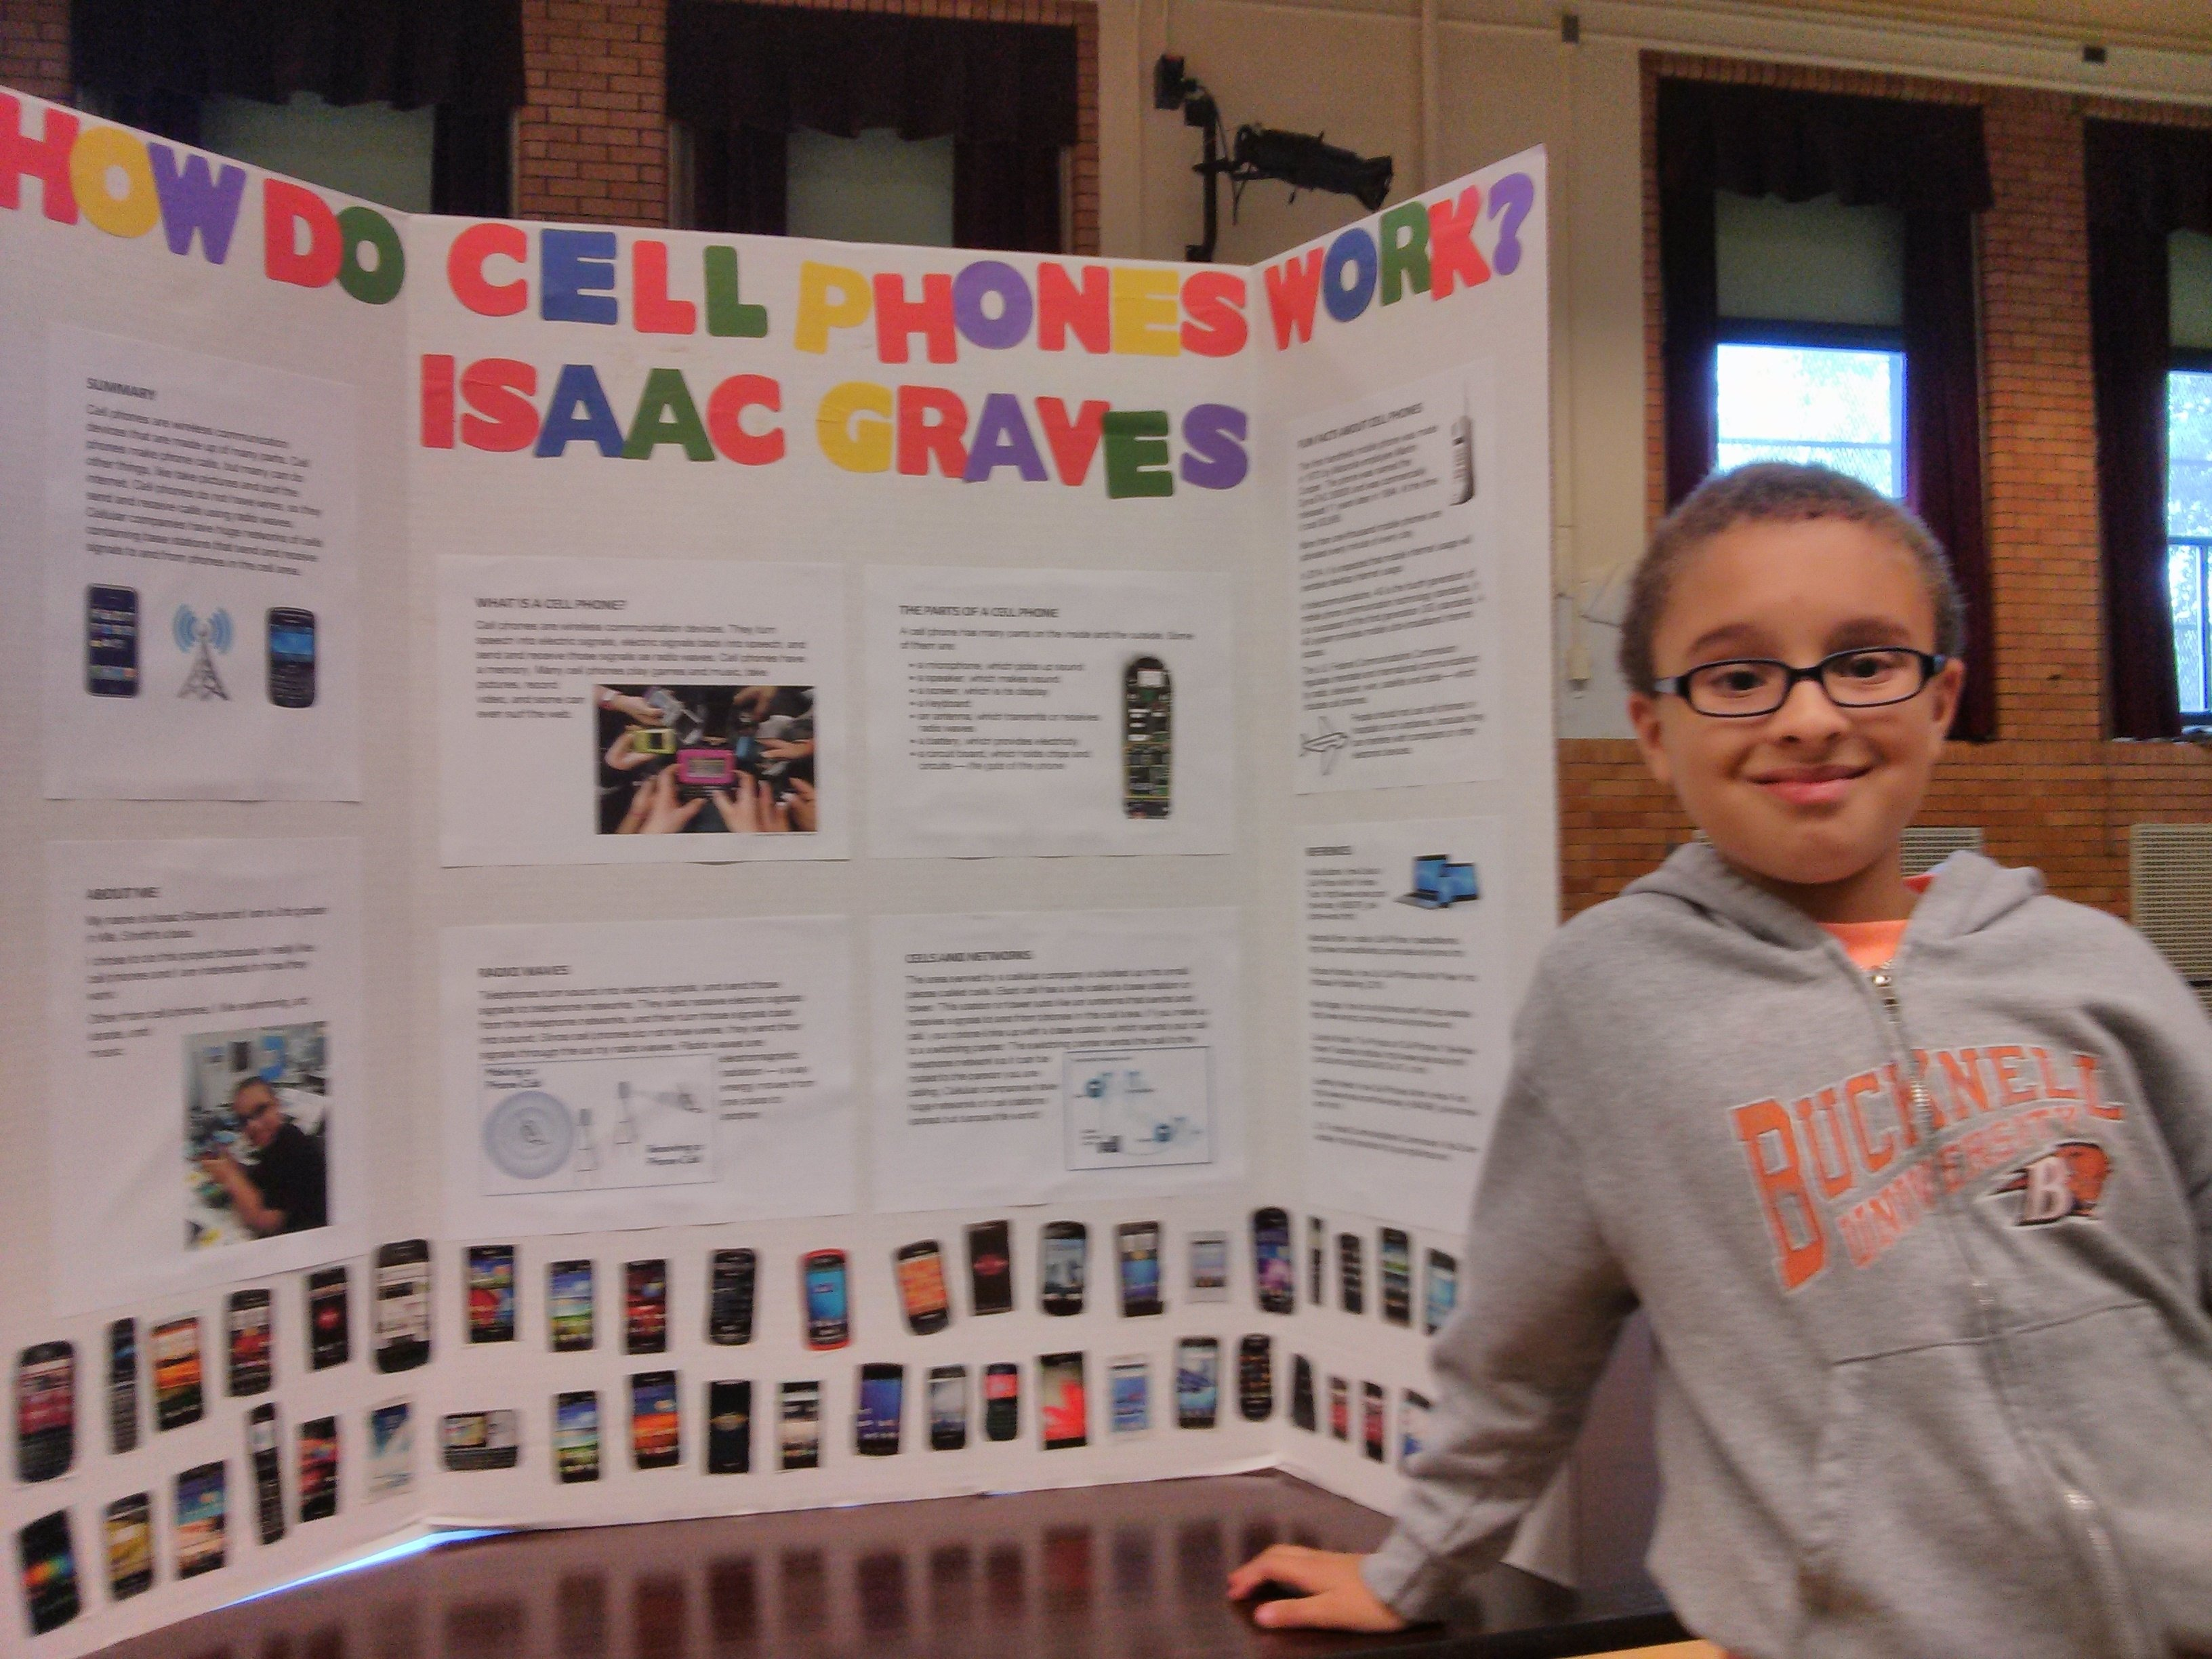 10 Elegant 3Rd Grade Science Fair Ideas third grade science projects research paper academic service 2 2021